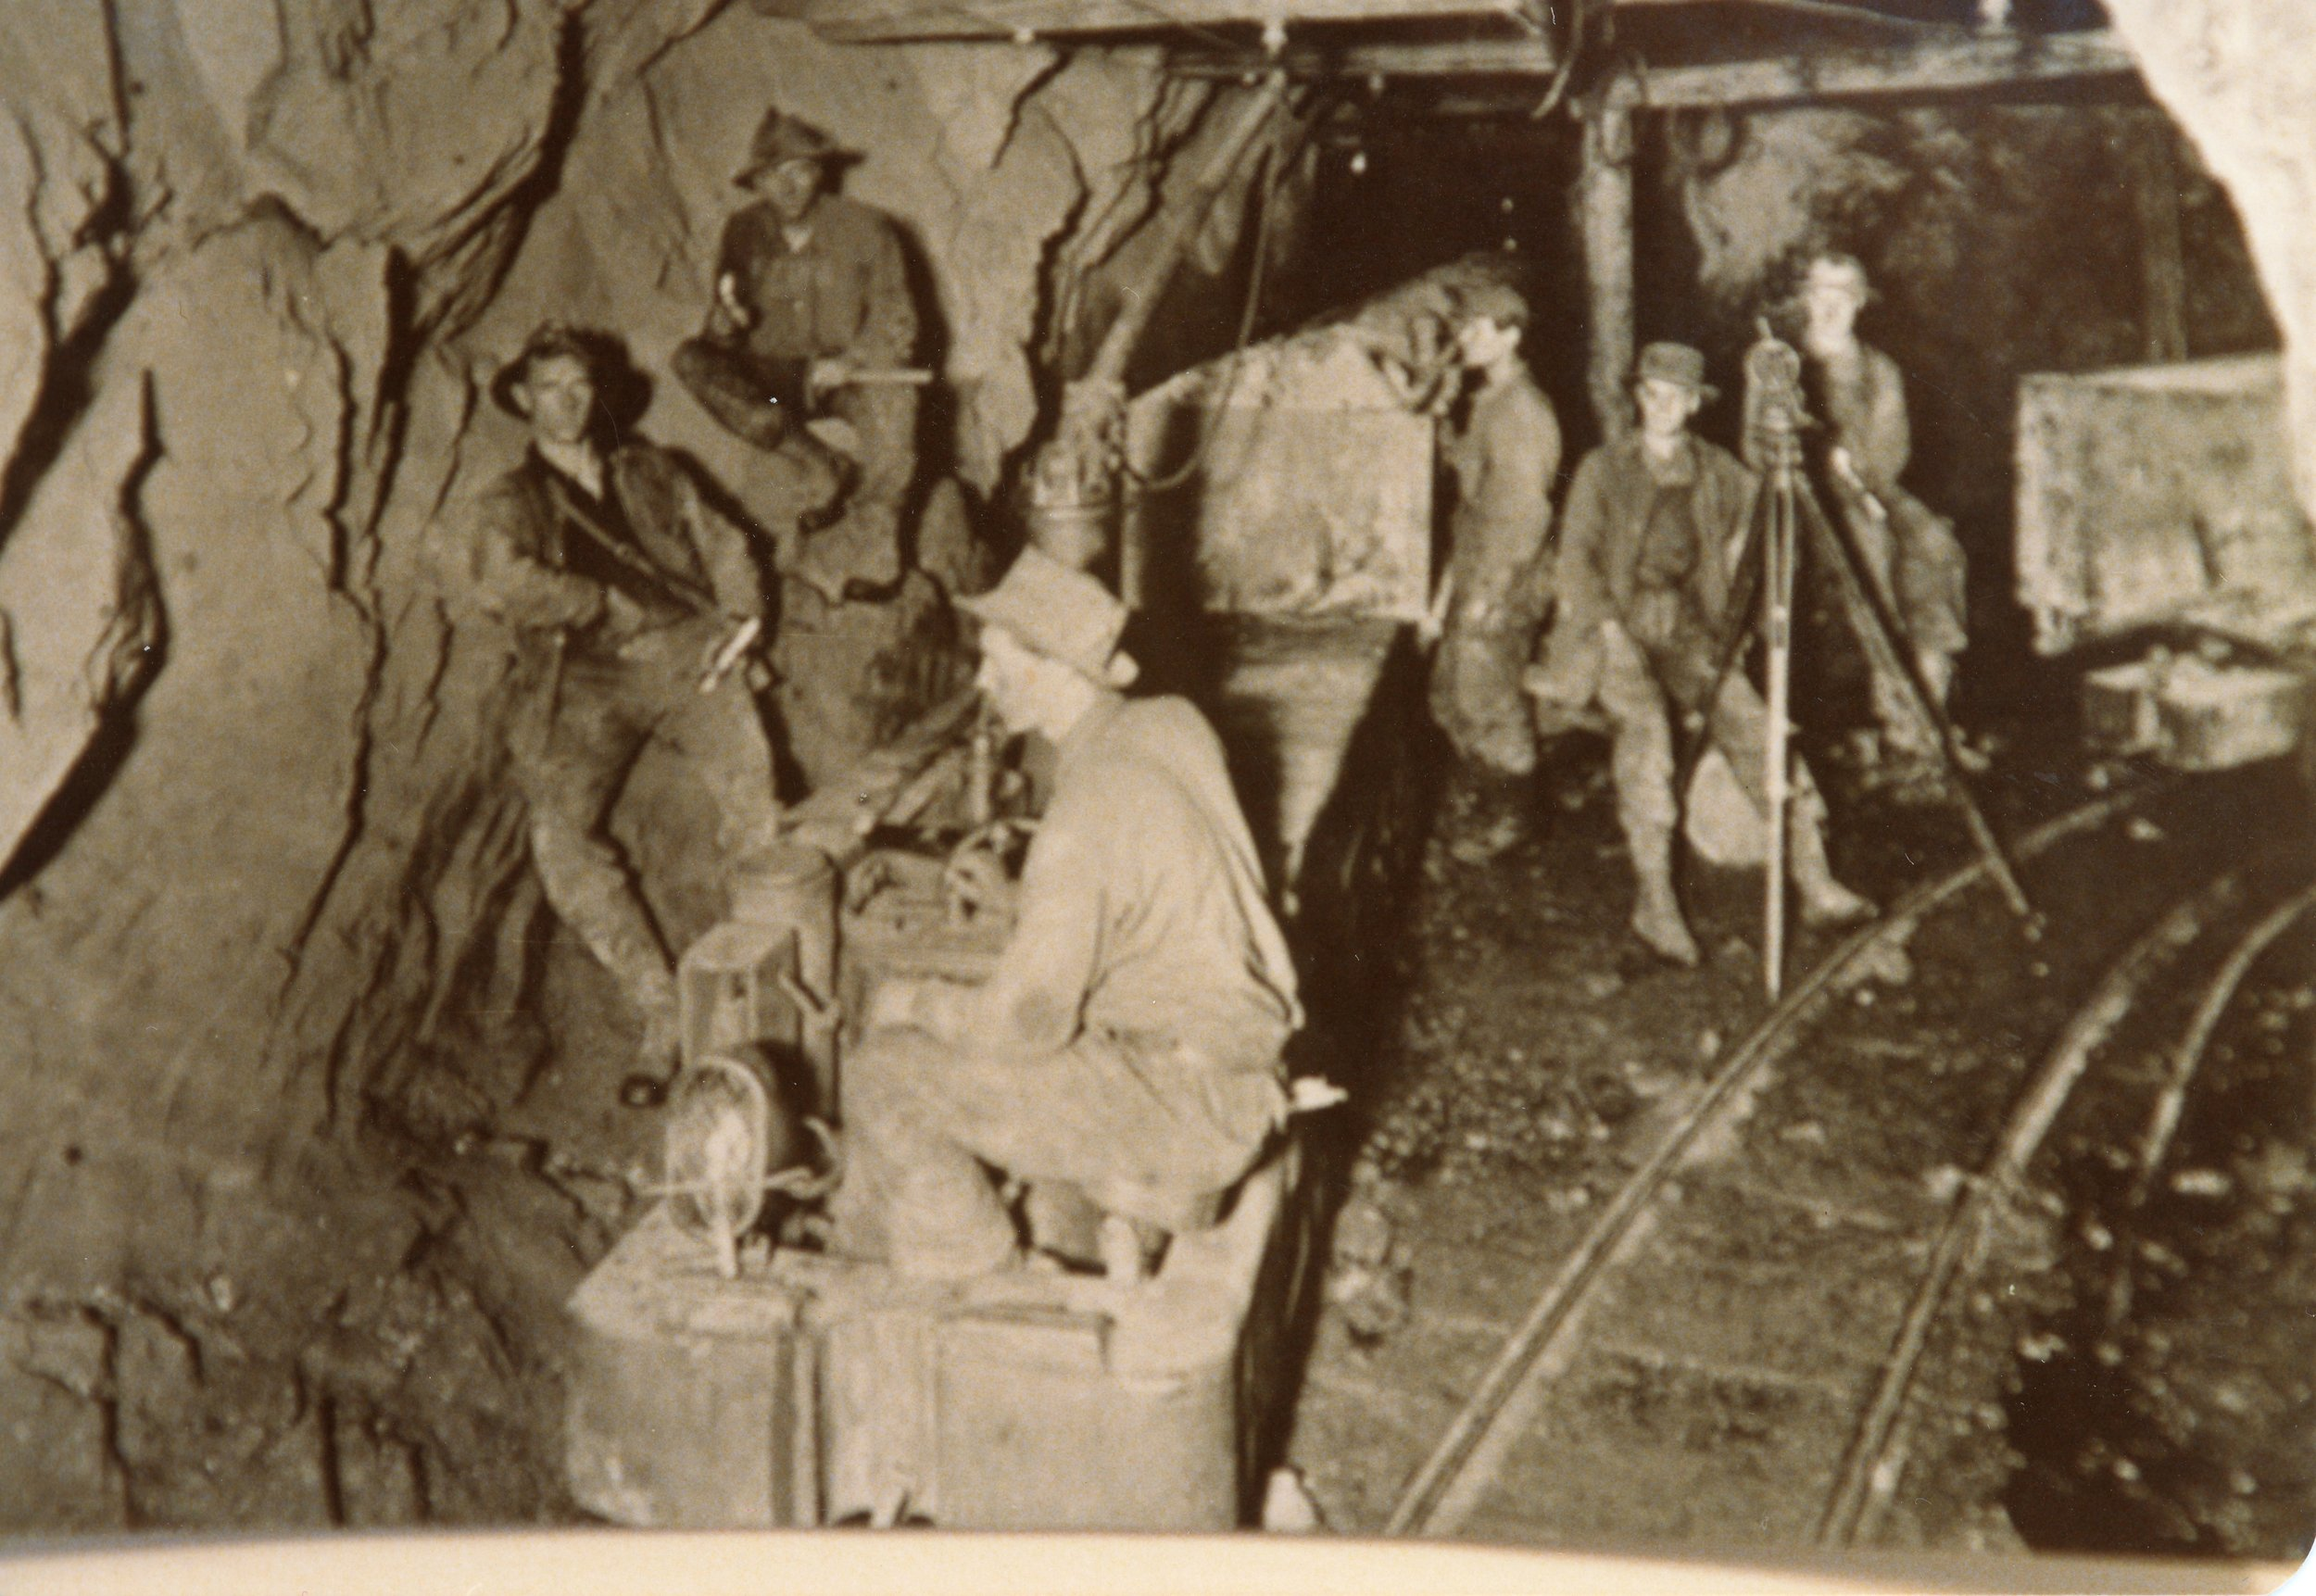 Photo 2304.0126: 1300 ft level in the War Eagle Mine, showing the electric tram track. 1913; Names unknown.